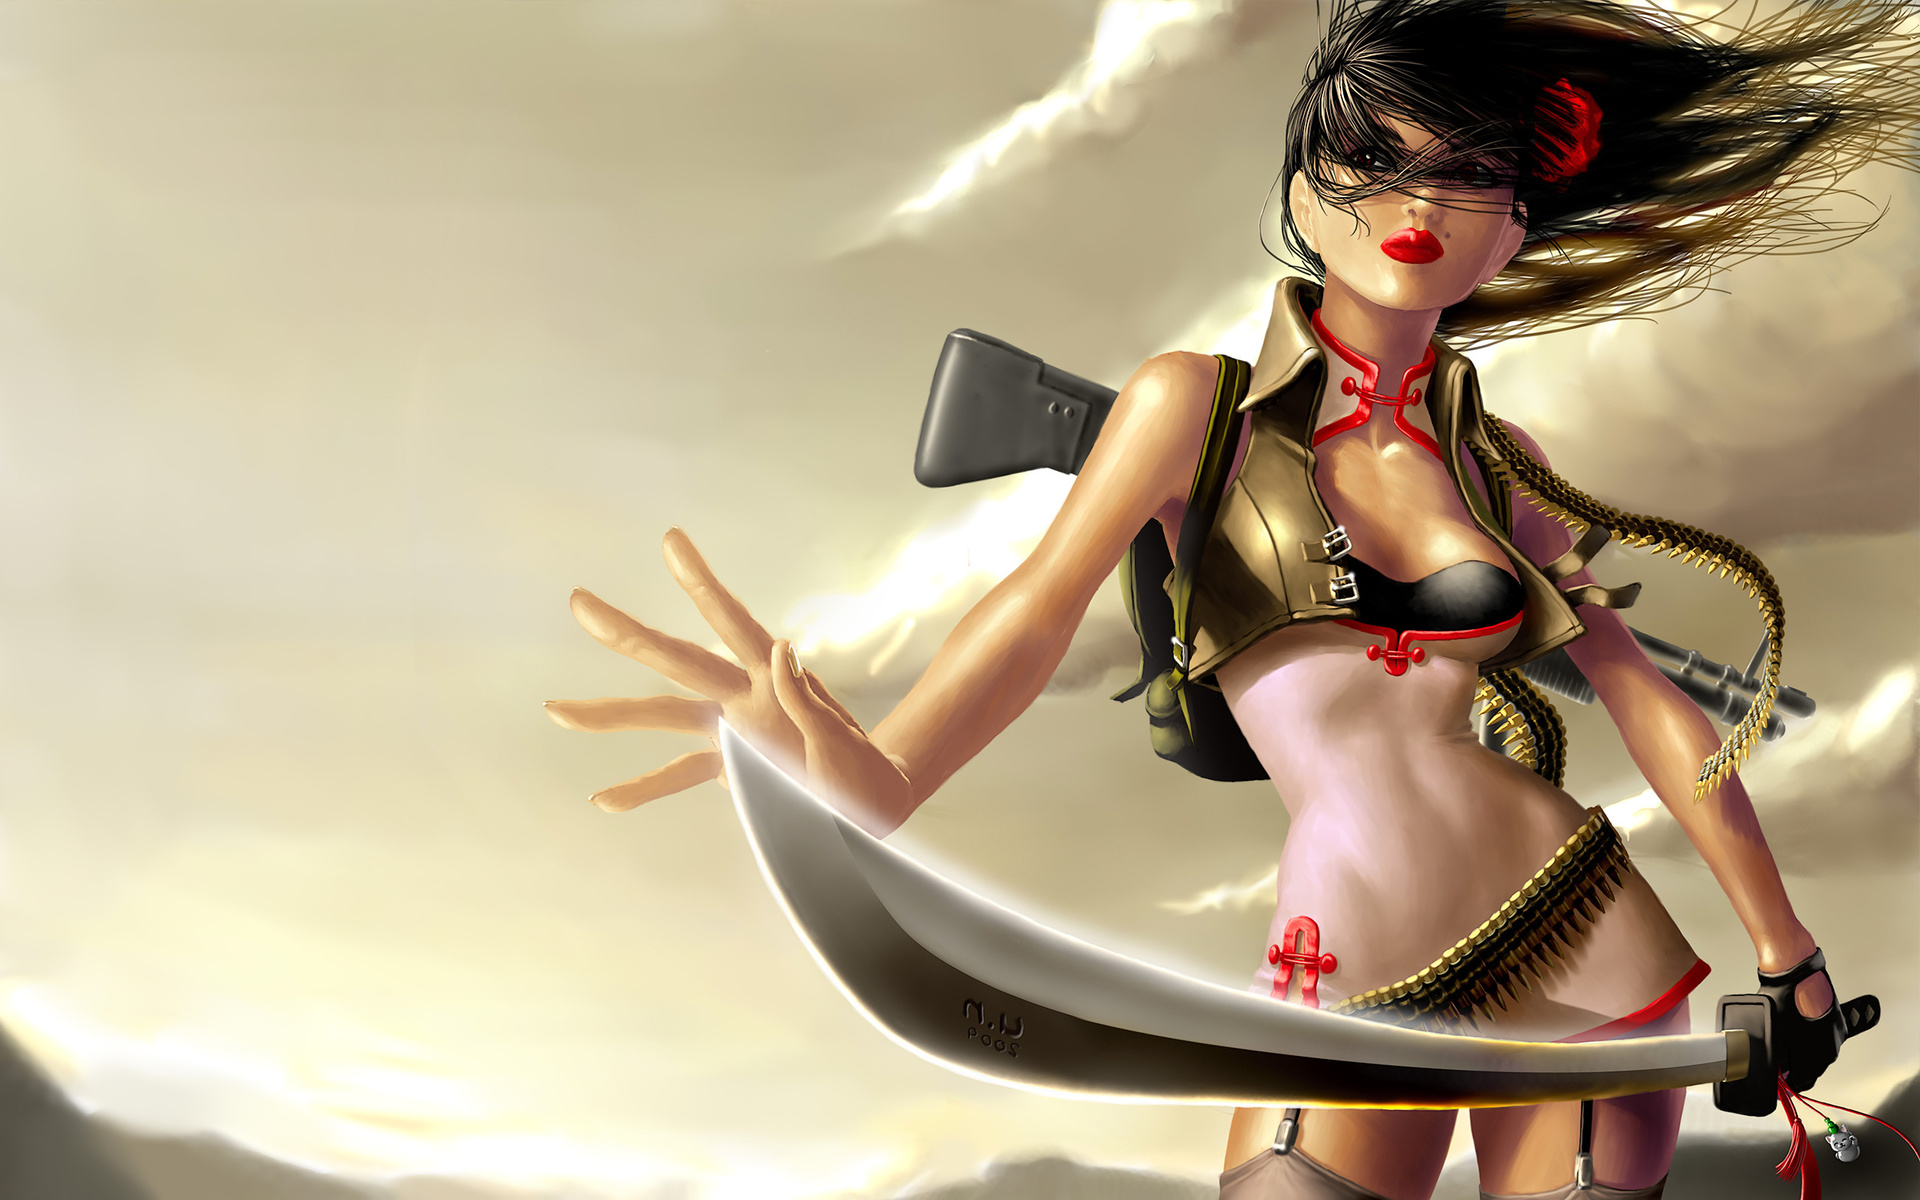 Manga warrior chick naked hd wallpaper nude model